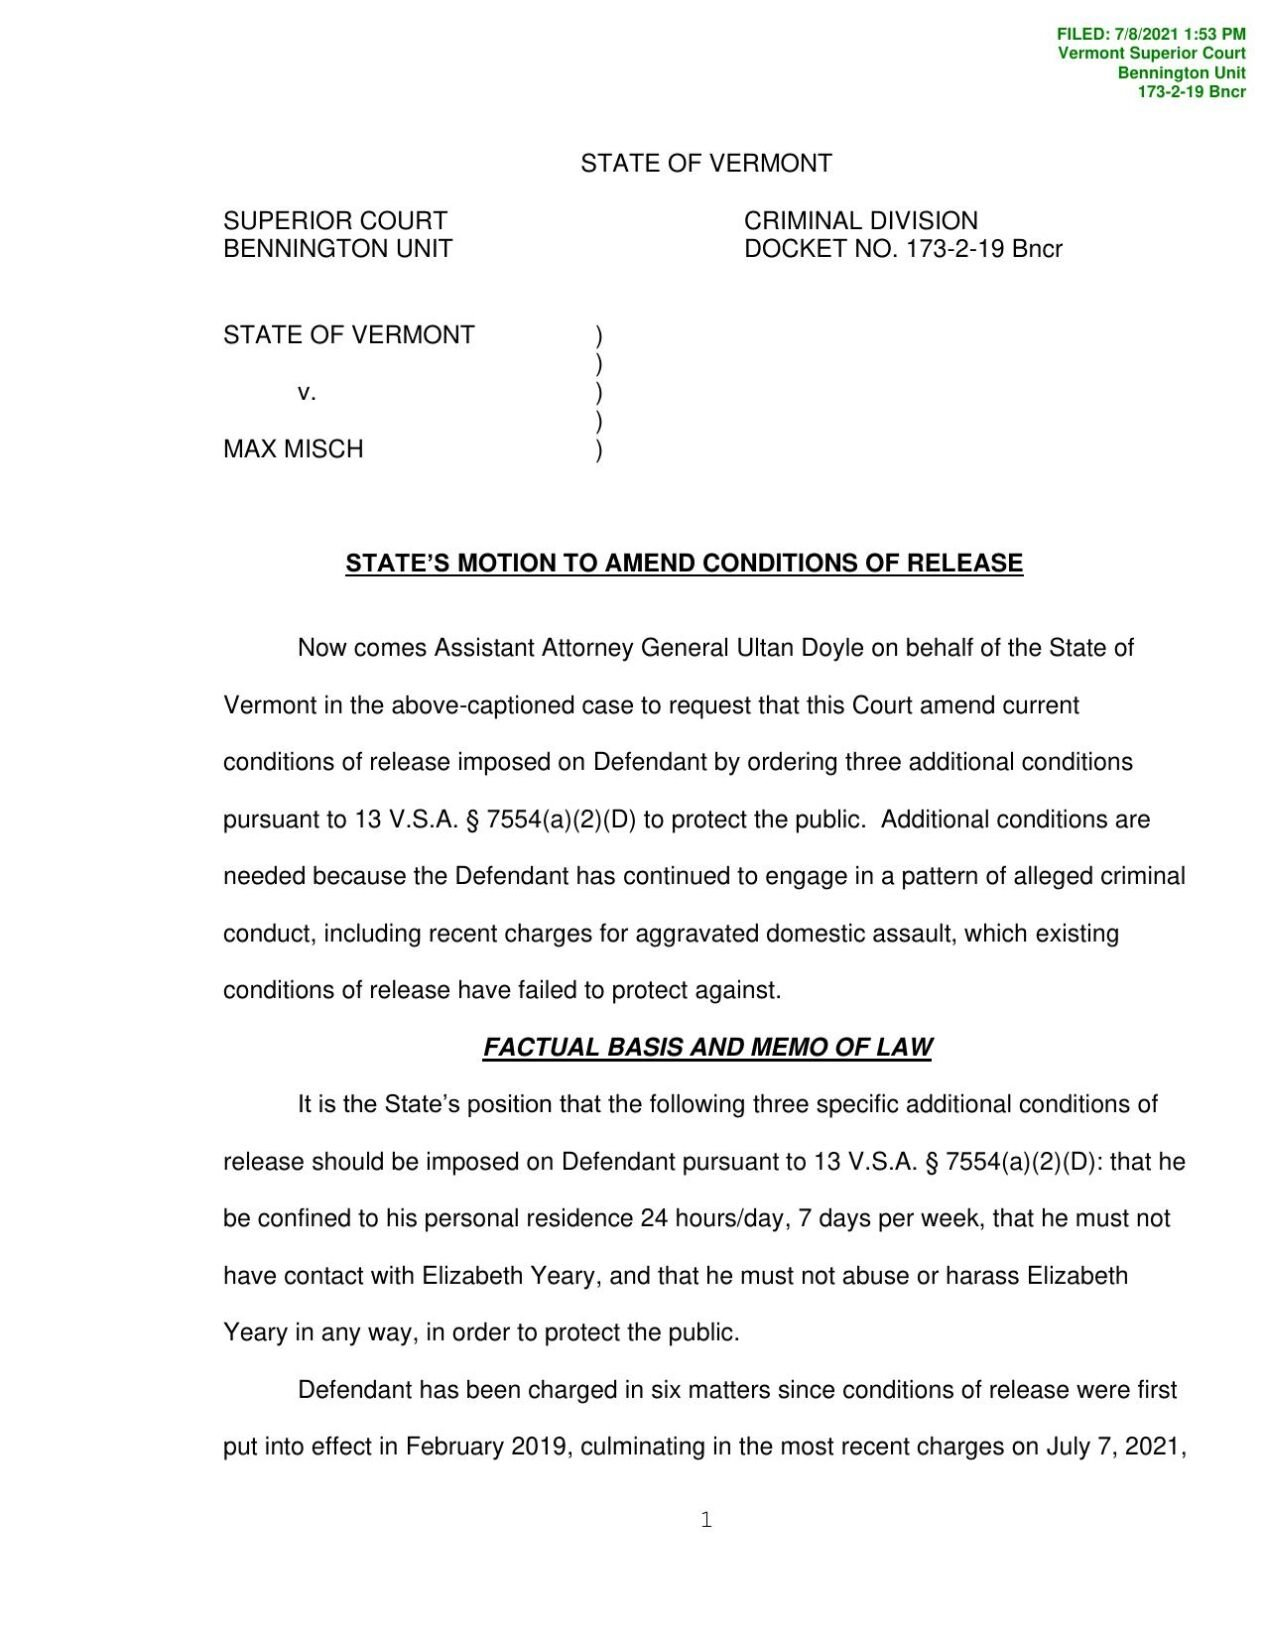 State v. Max Misch - state's motion to amend conditions of release